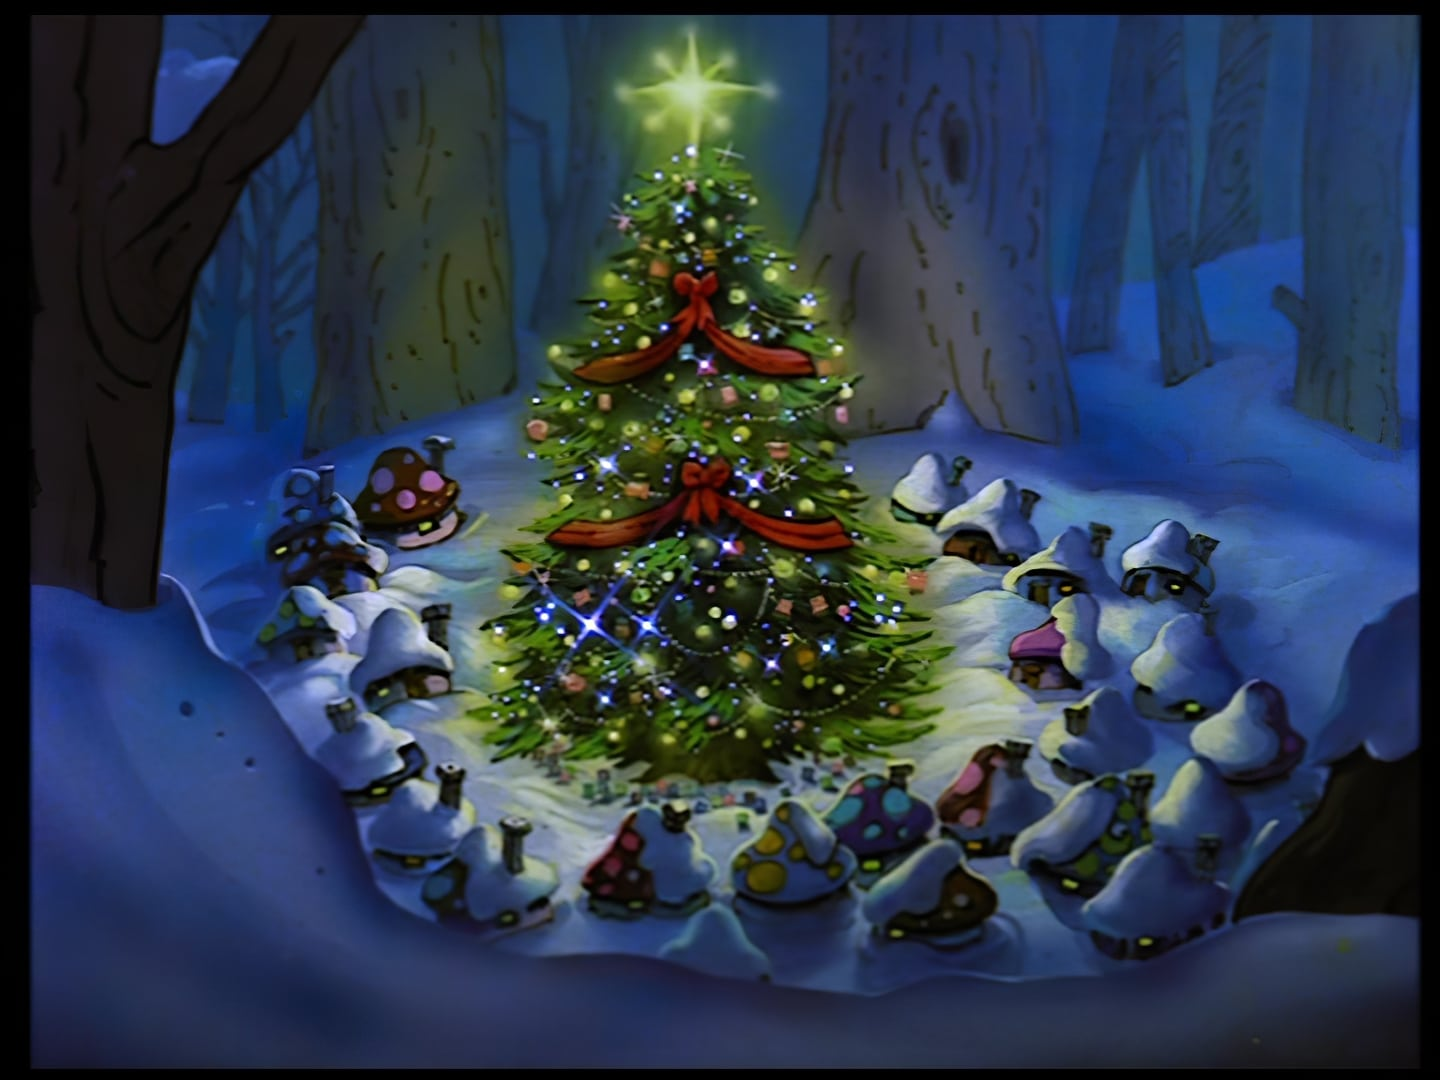 The Smurfs - Season 0 Episode 2 : The Smurfs Christmas Special